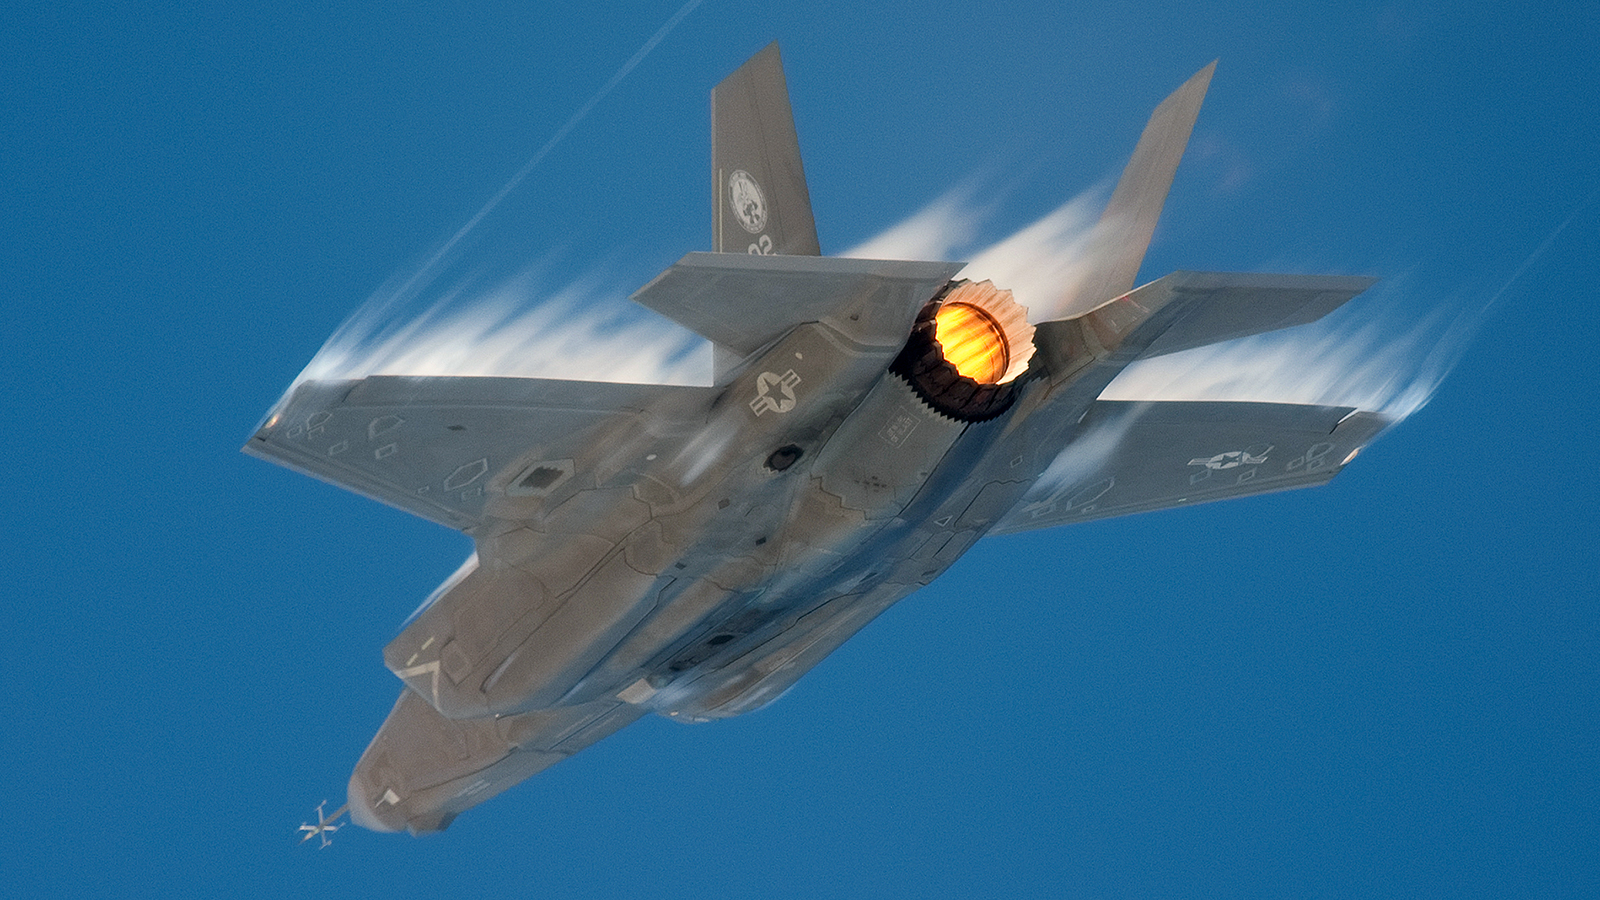 This F-35 On Afterburner Is Your Aeroplane Porn Of The Day